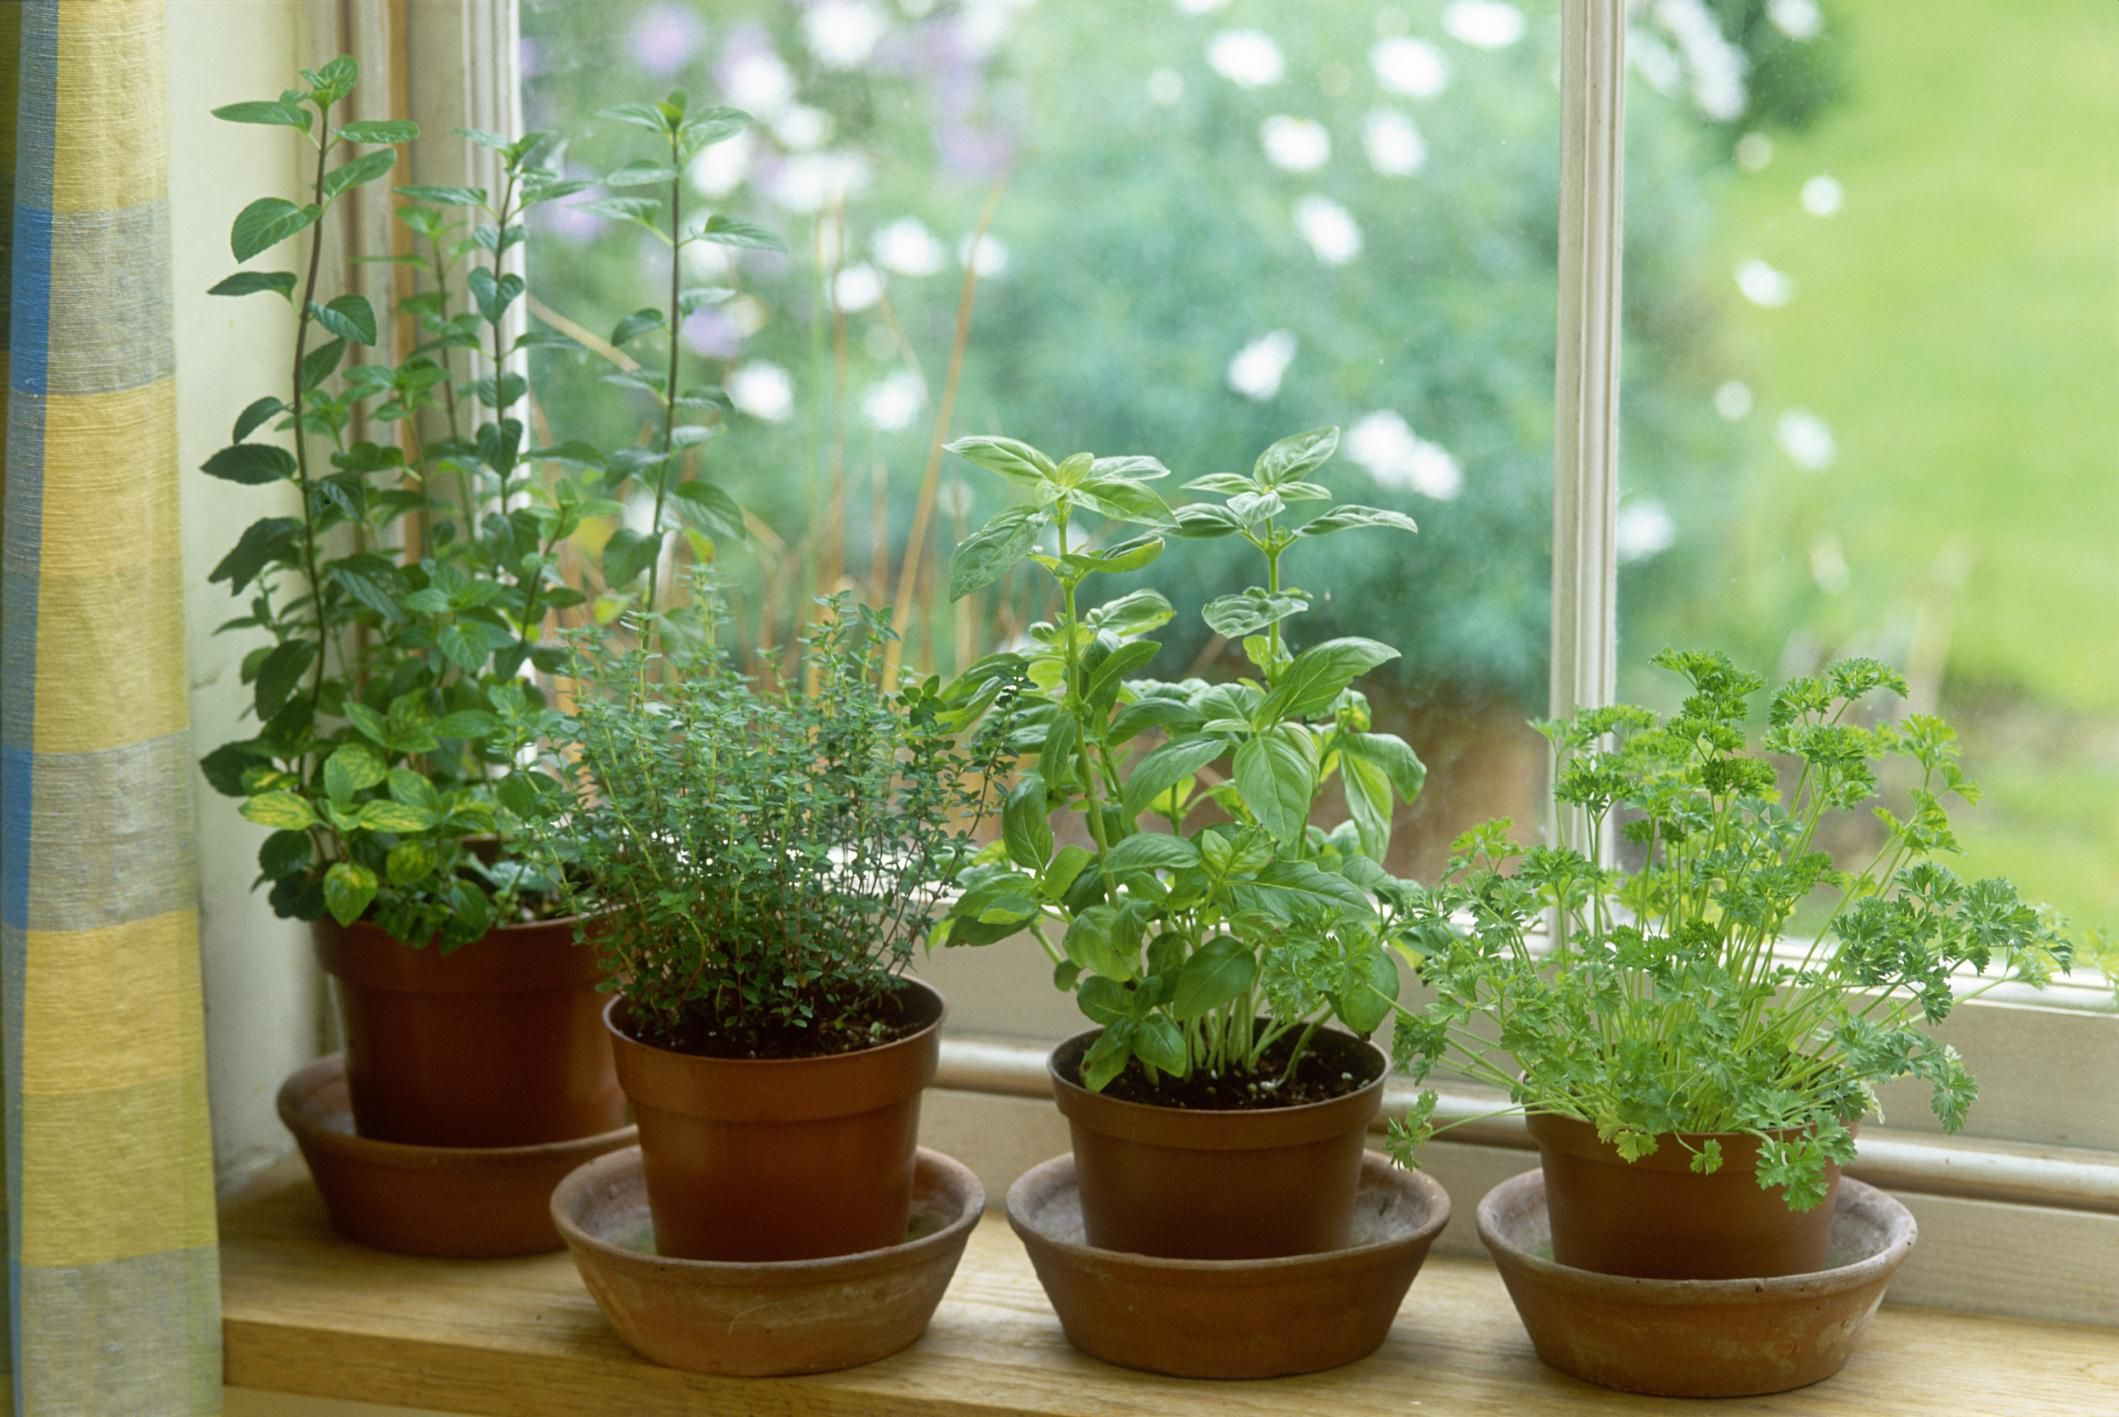 How To Overwinter Garden Herbs Indoors